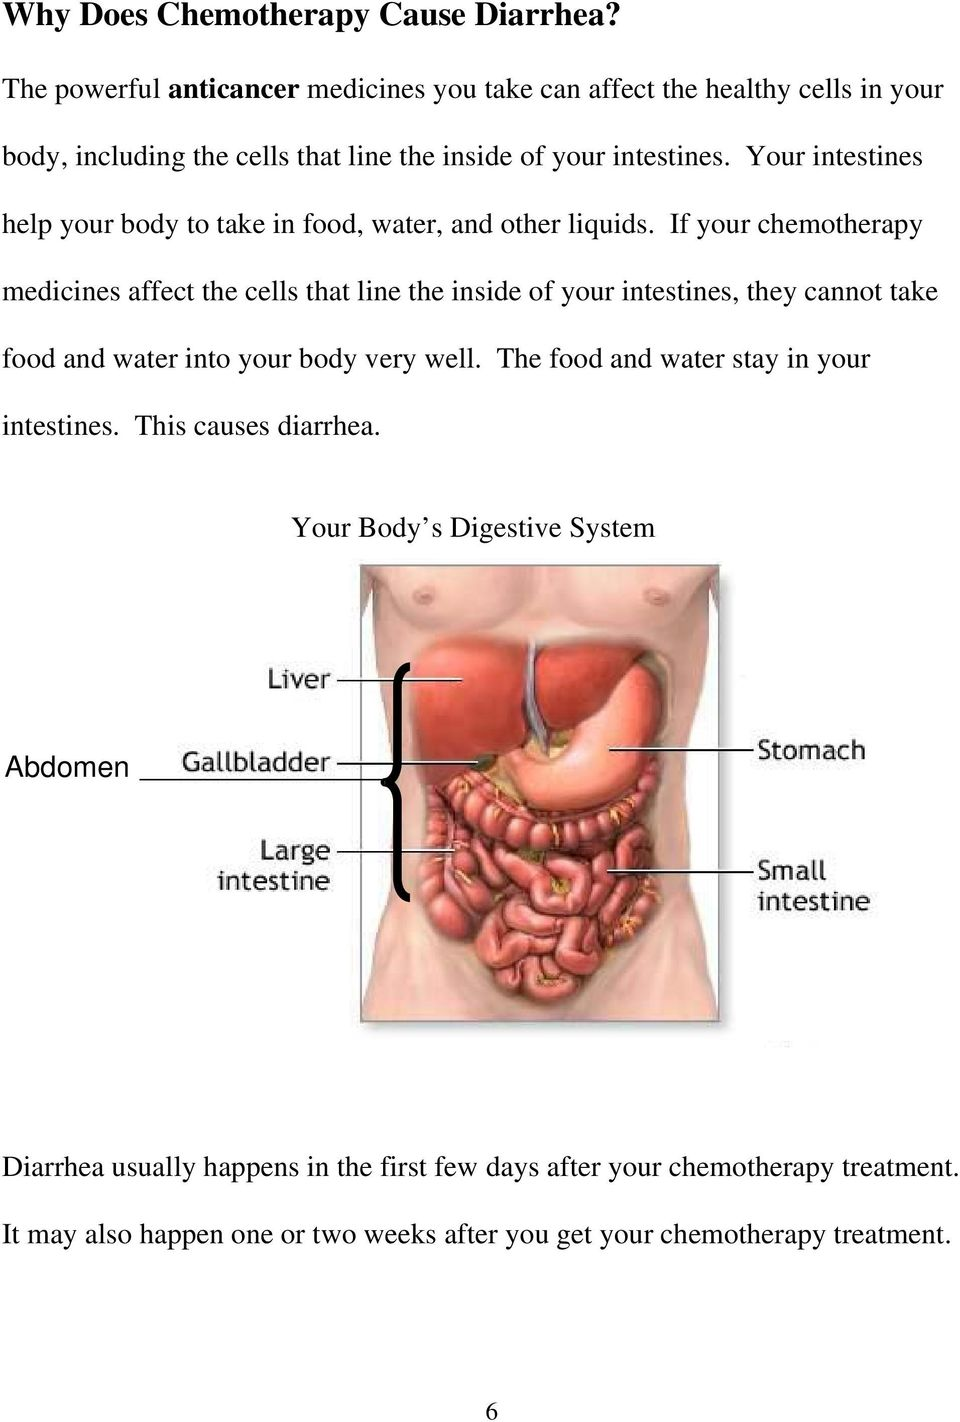 Your intestines help your body to take in food, water, and other liquids.